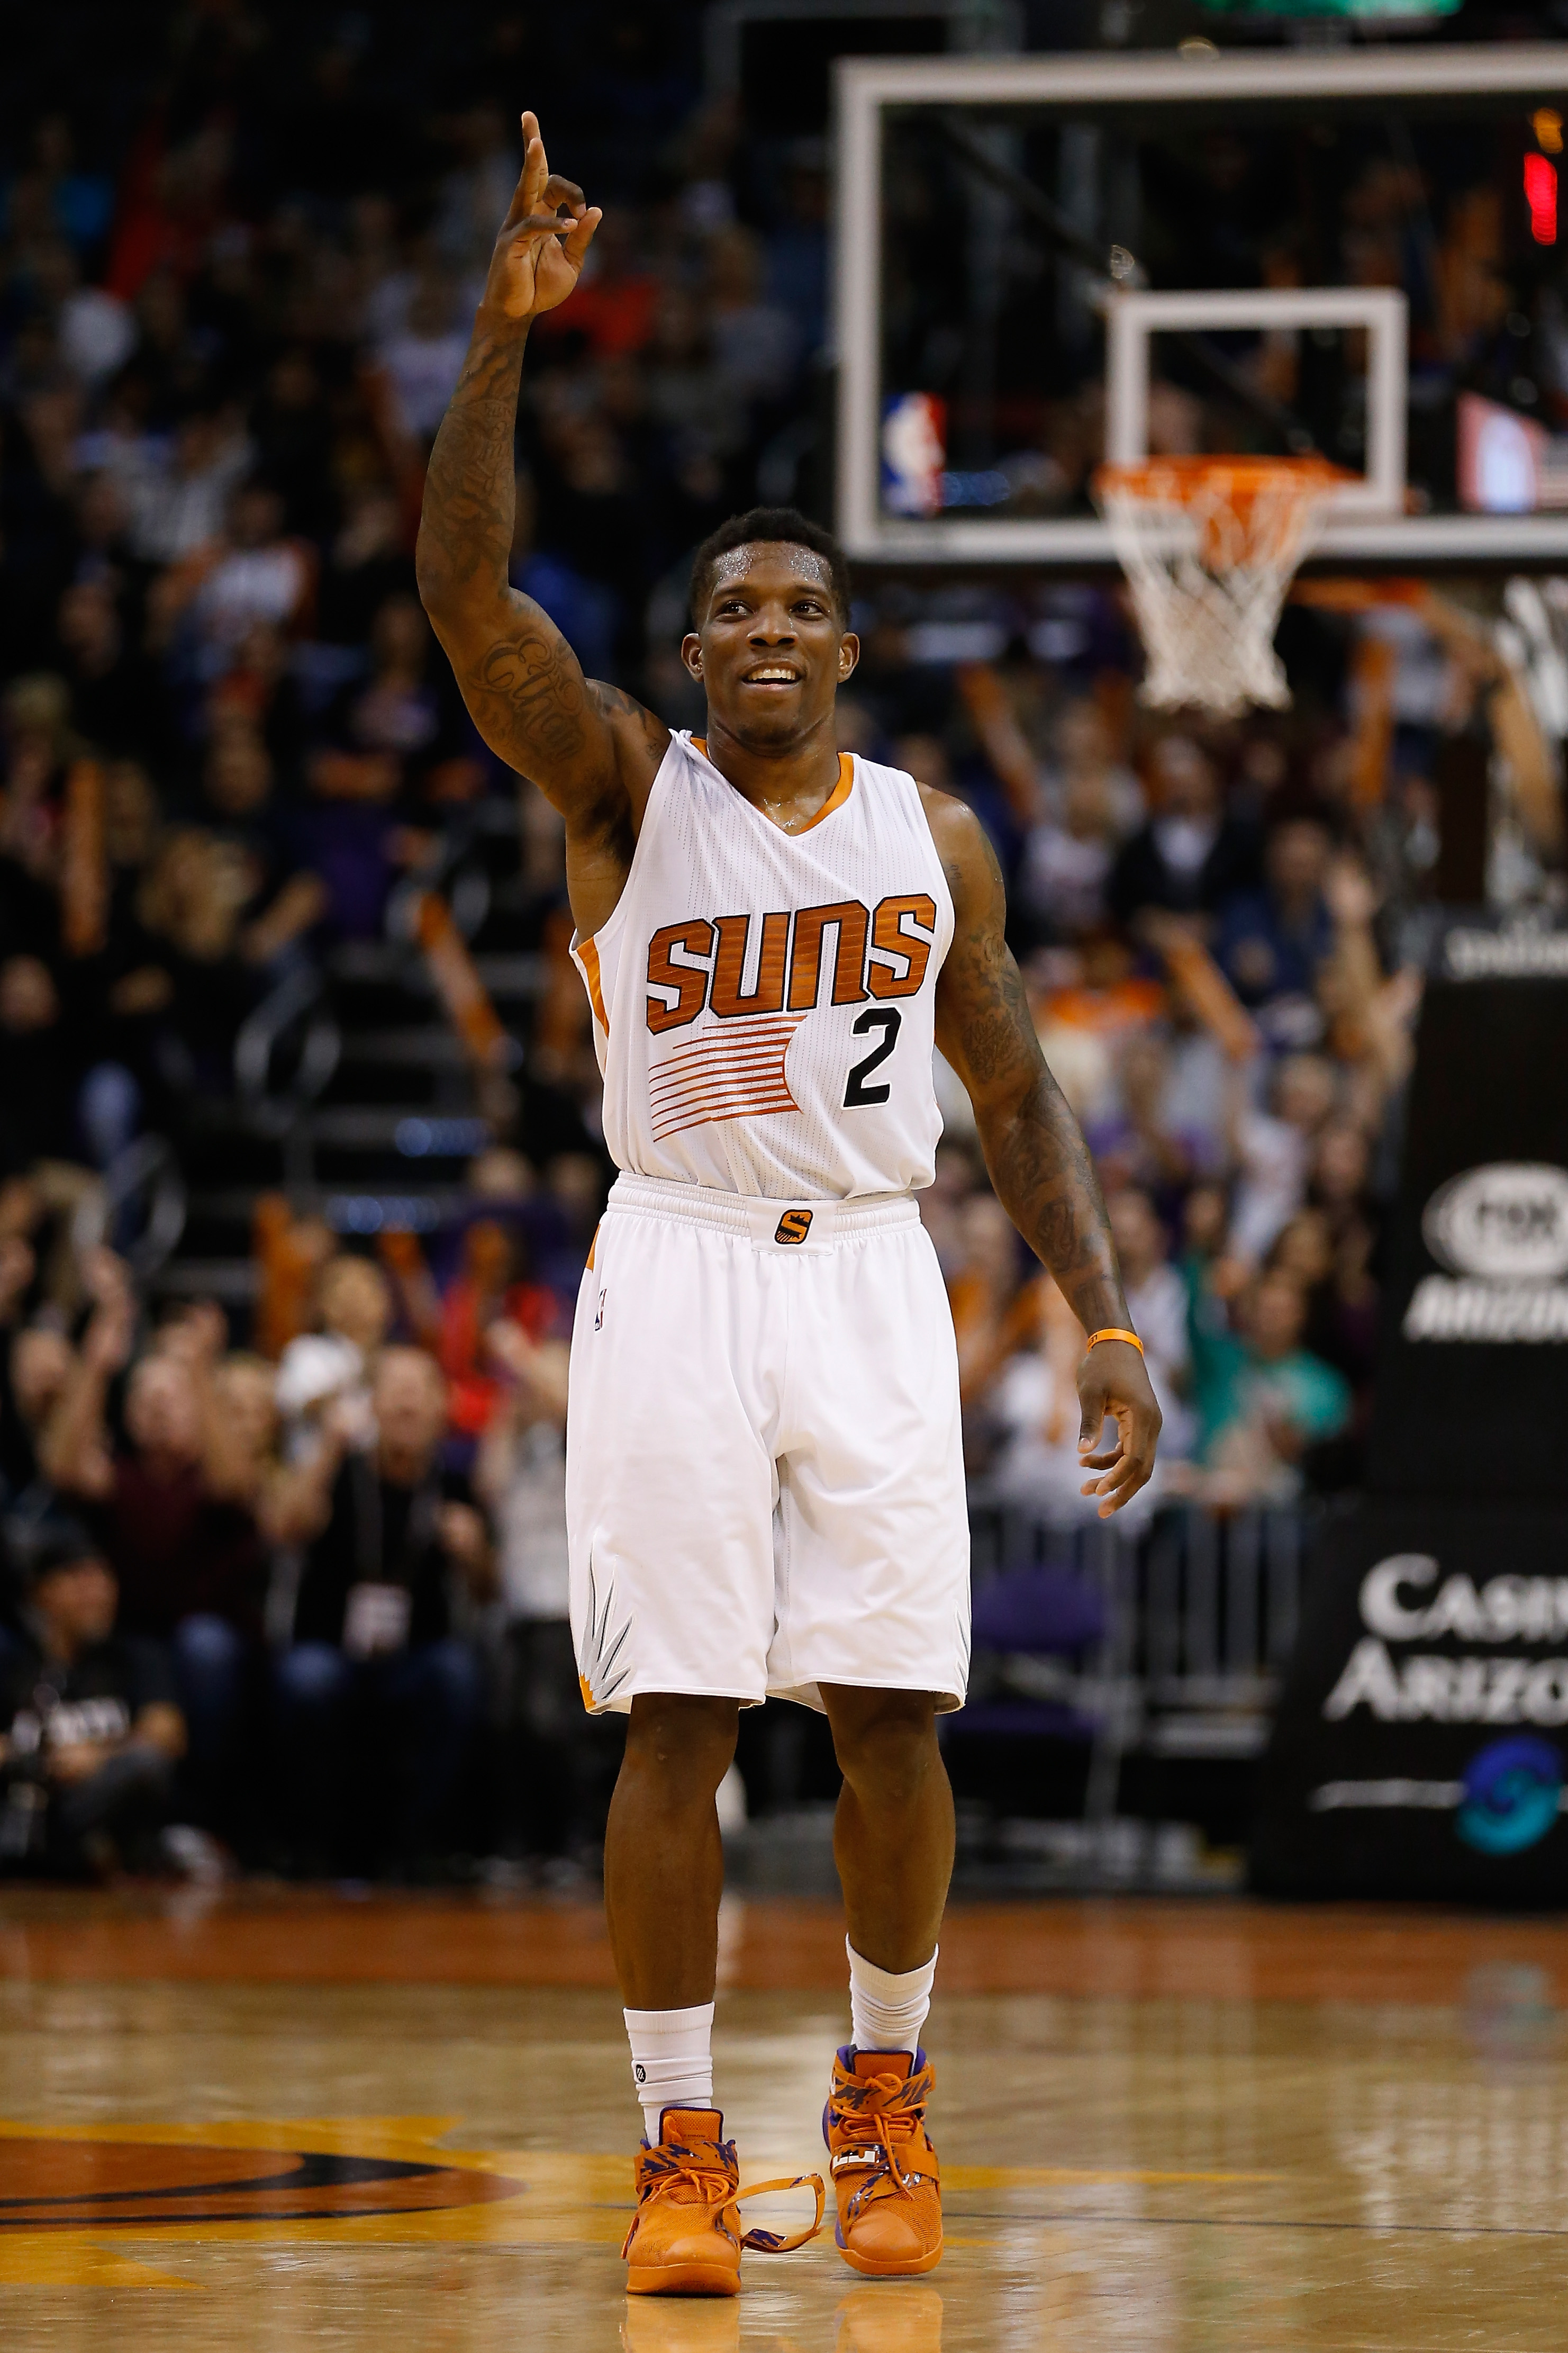 PHOENIX, AZ - DECEMBER 23:  Eric Bledsoe #2 of the Phoenix Suns reacts after Ronnie Price (not pictured) hit a three point shot against the Denver Nuggets during the second half of the NBA game at Talking Stick Resort Arena on December 23, 2015 in Phoenix